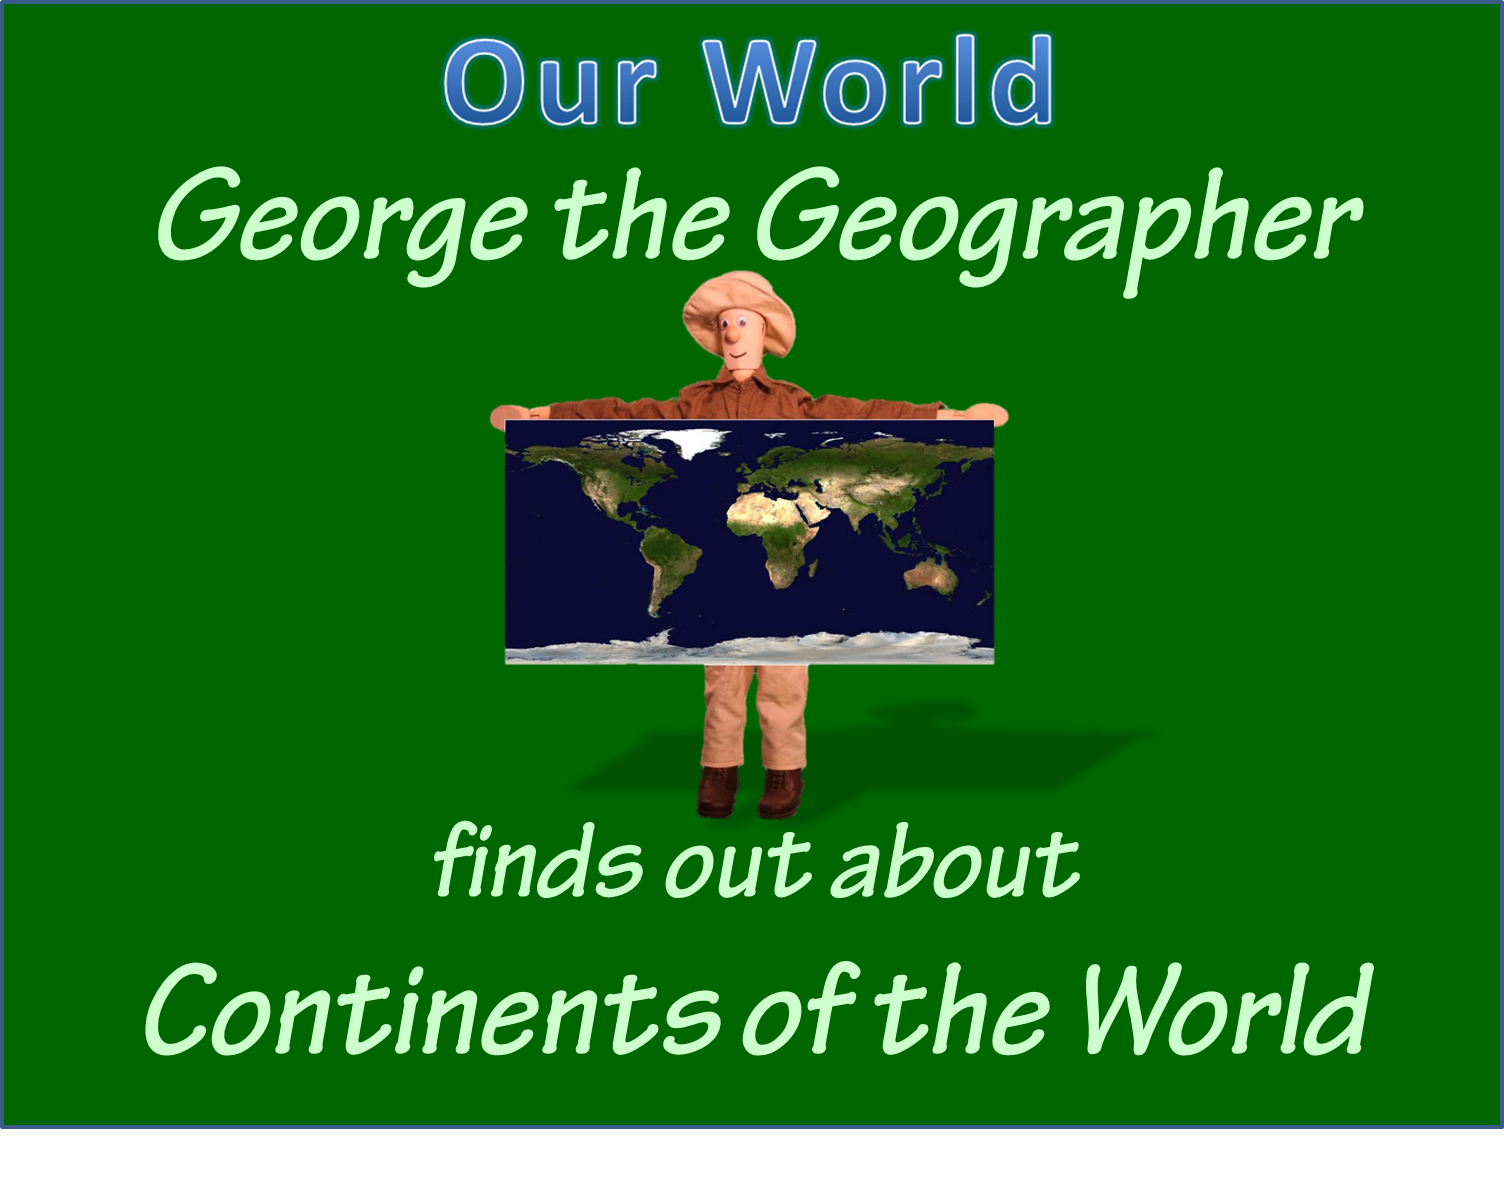 George finds out about the continents of the world. Free download